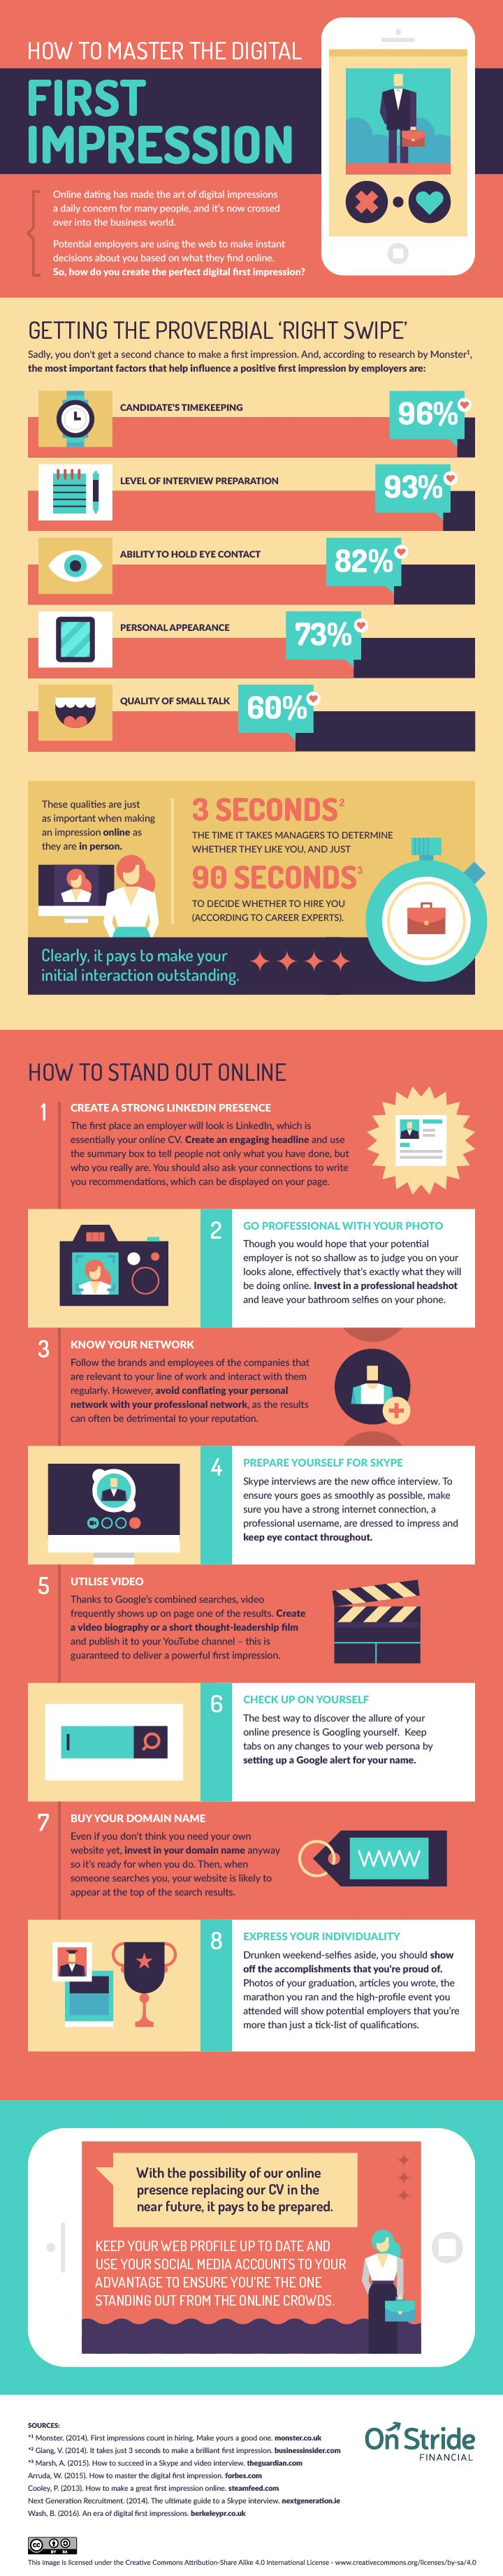 How To Master The Digital First Impression - infographic